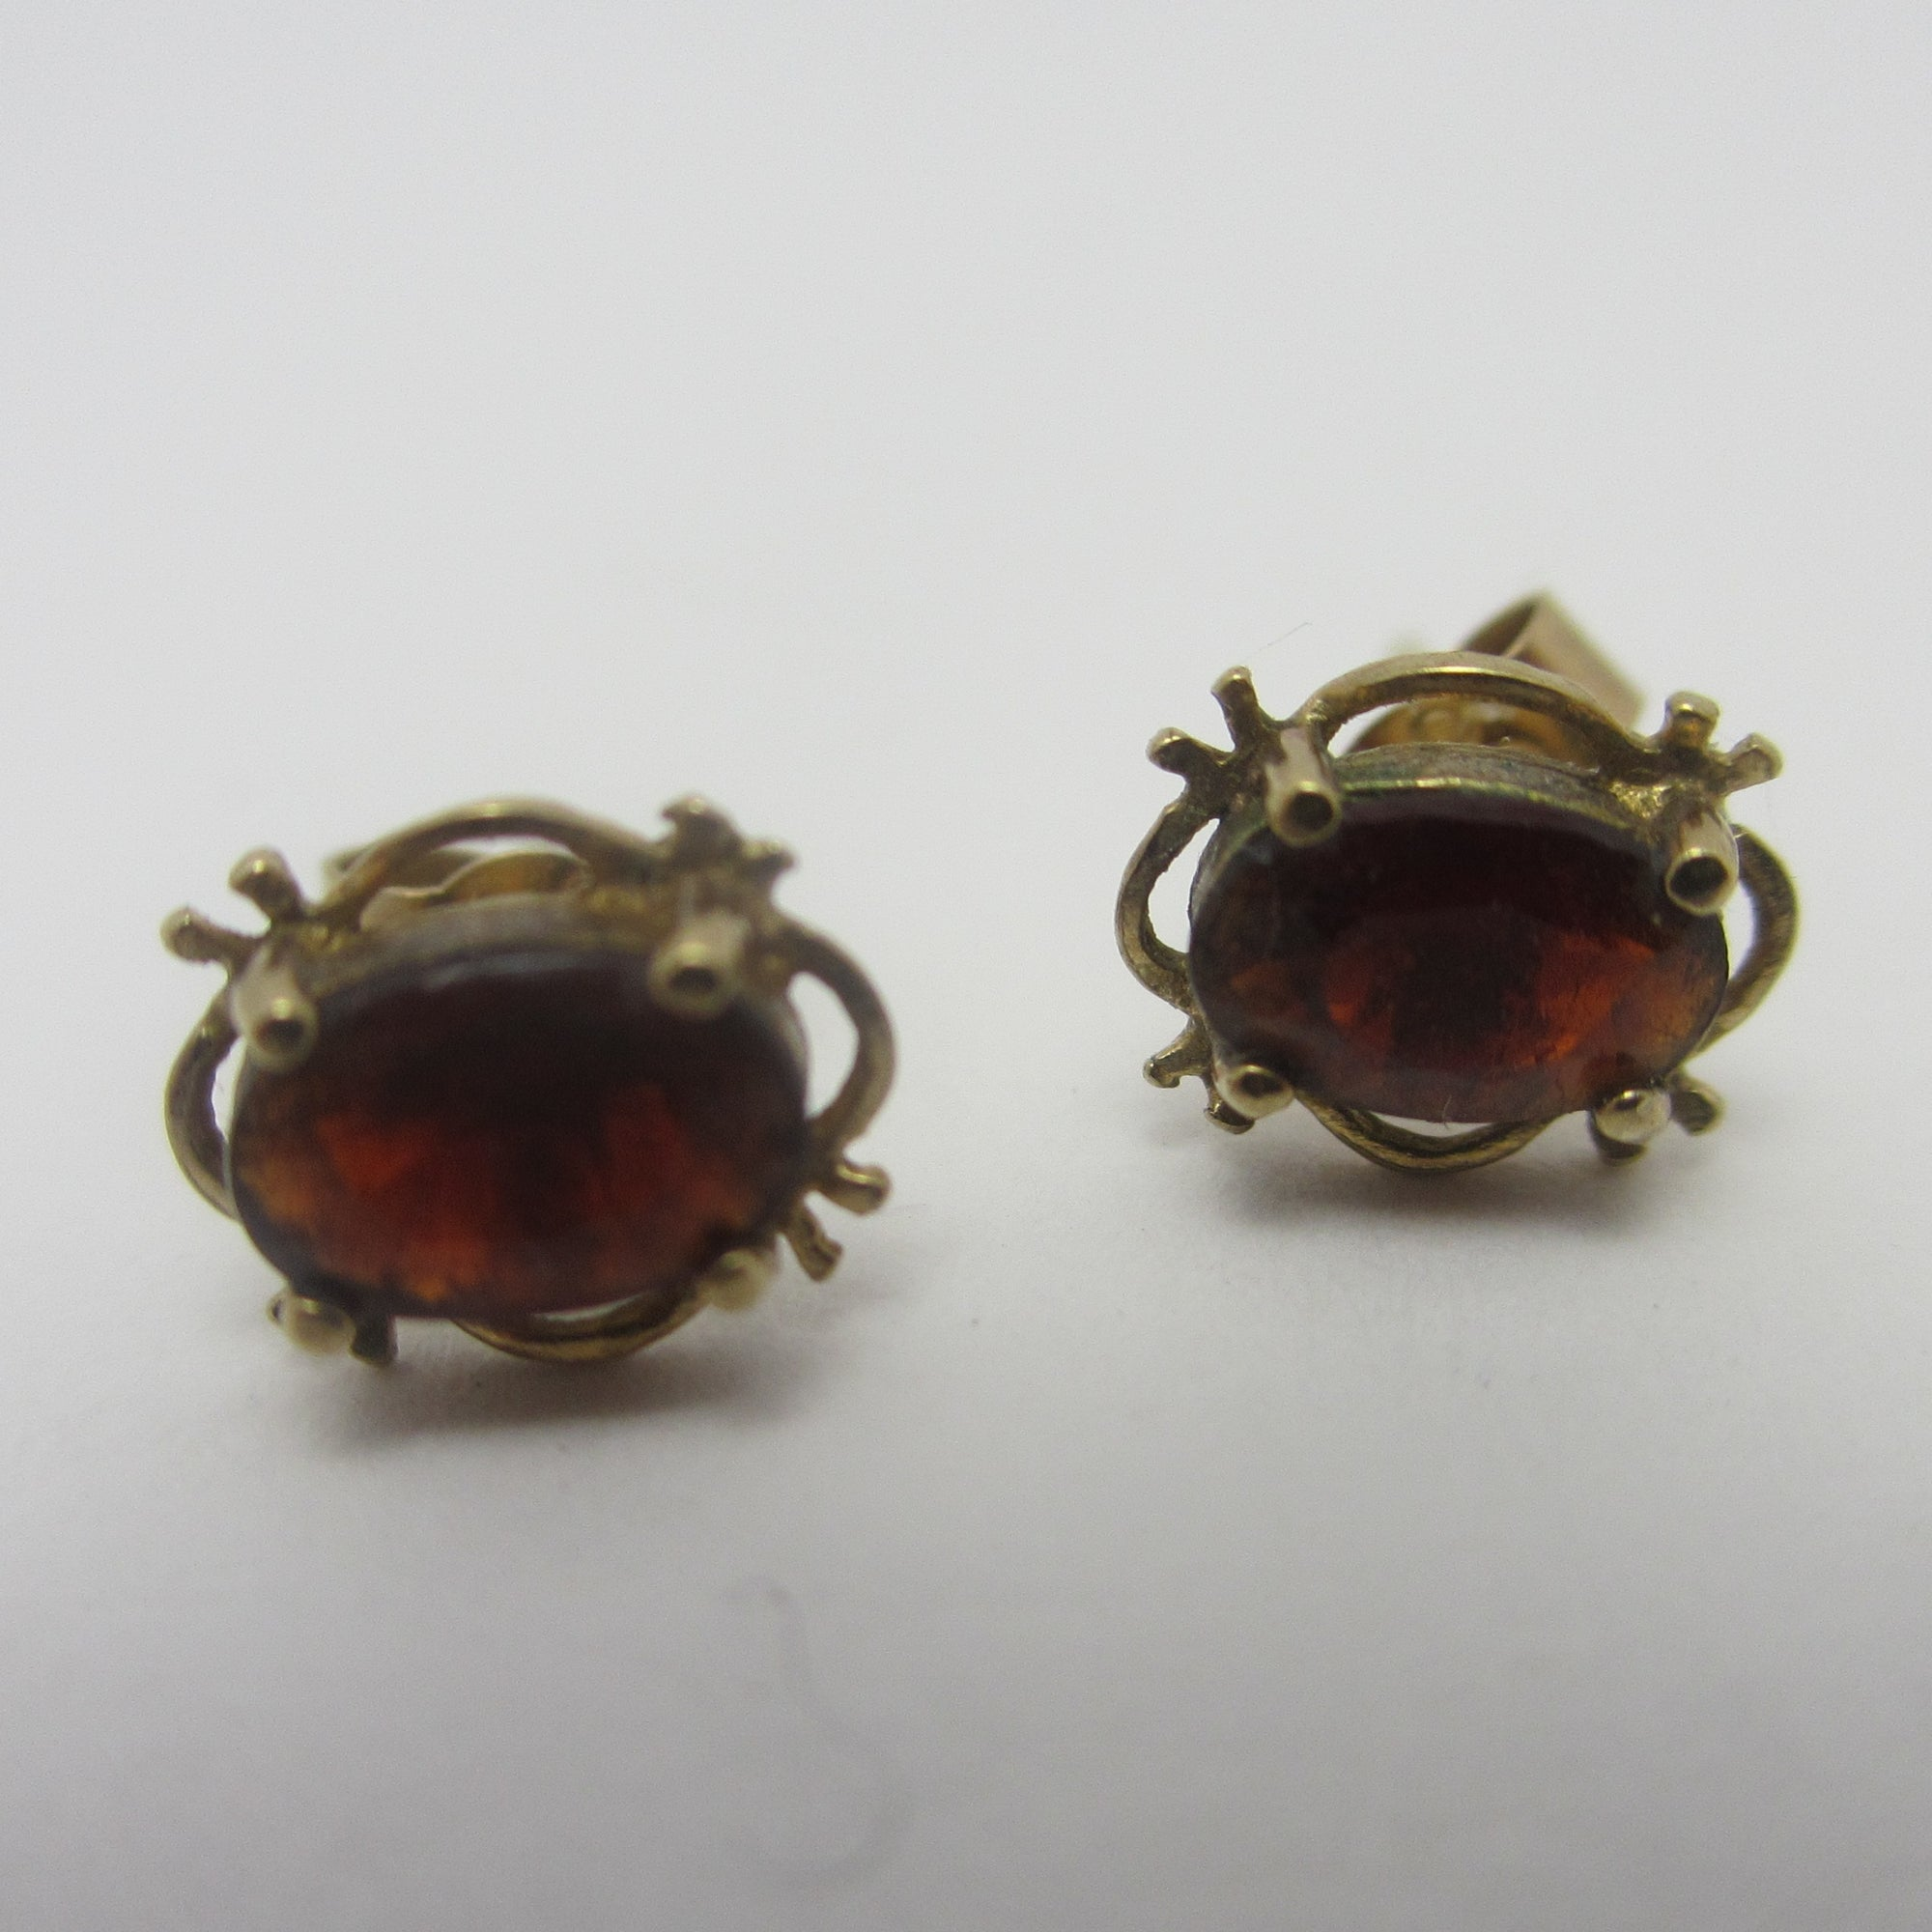 Garnet in 9k Gold Stud Earrings Vintage c1980